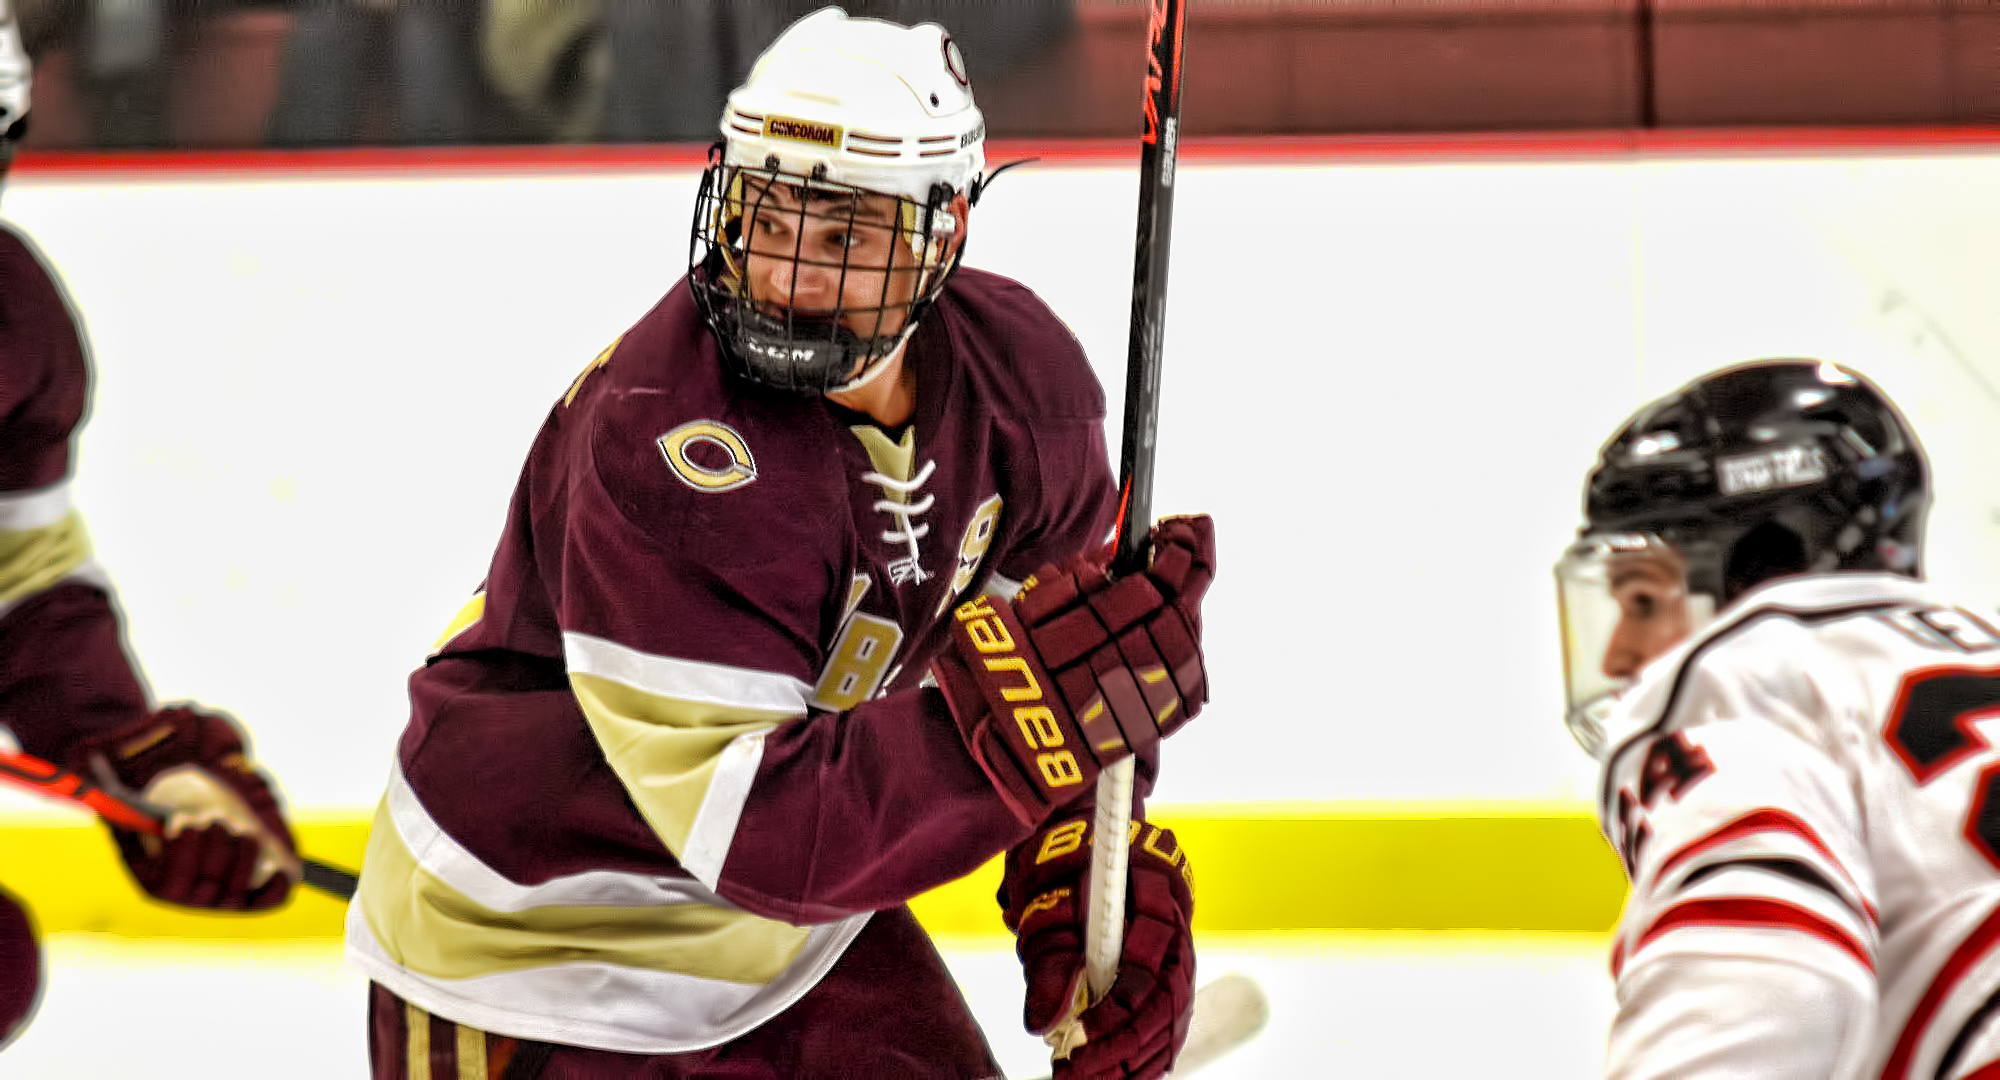 Junior Tyler Bossert scored a shorthanded goal in the second period in the Cobbers' series finale at Wis.-River Falls.